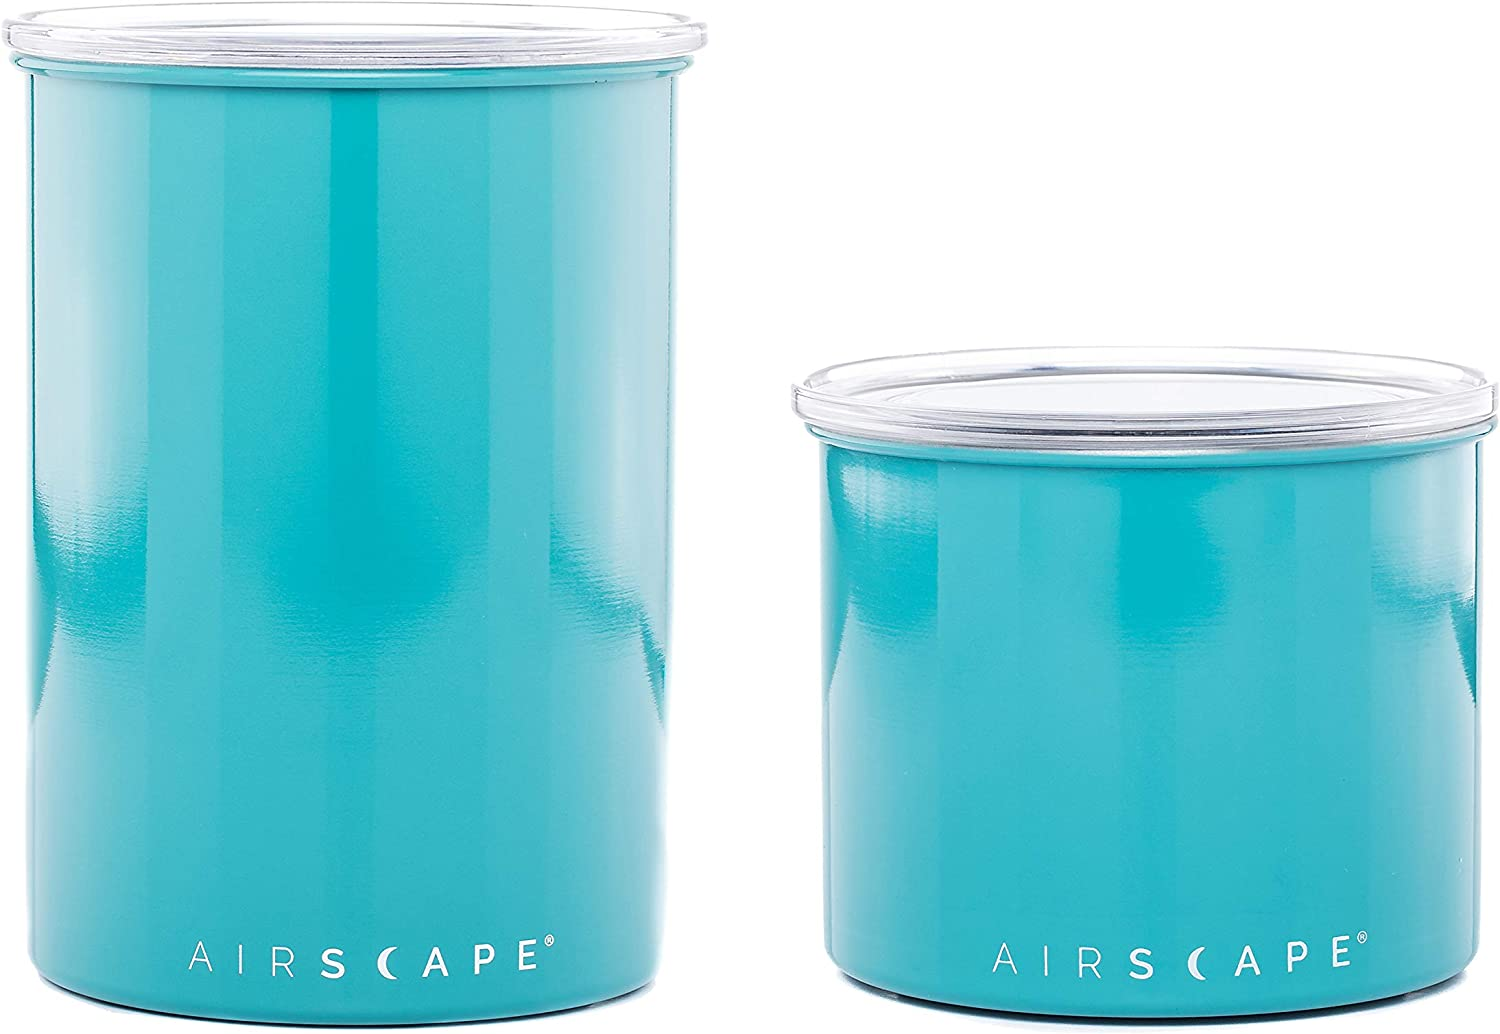 Airscape Coffee and Food Storage Canister - Patented Airtight Lid Preserve Food Freshness, Stainless Steel Food Container, Turquoise, 4